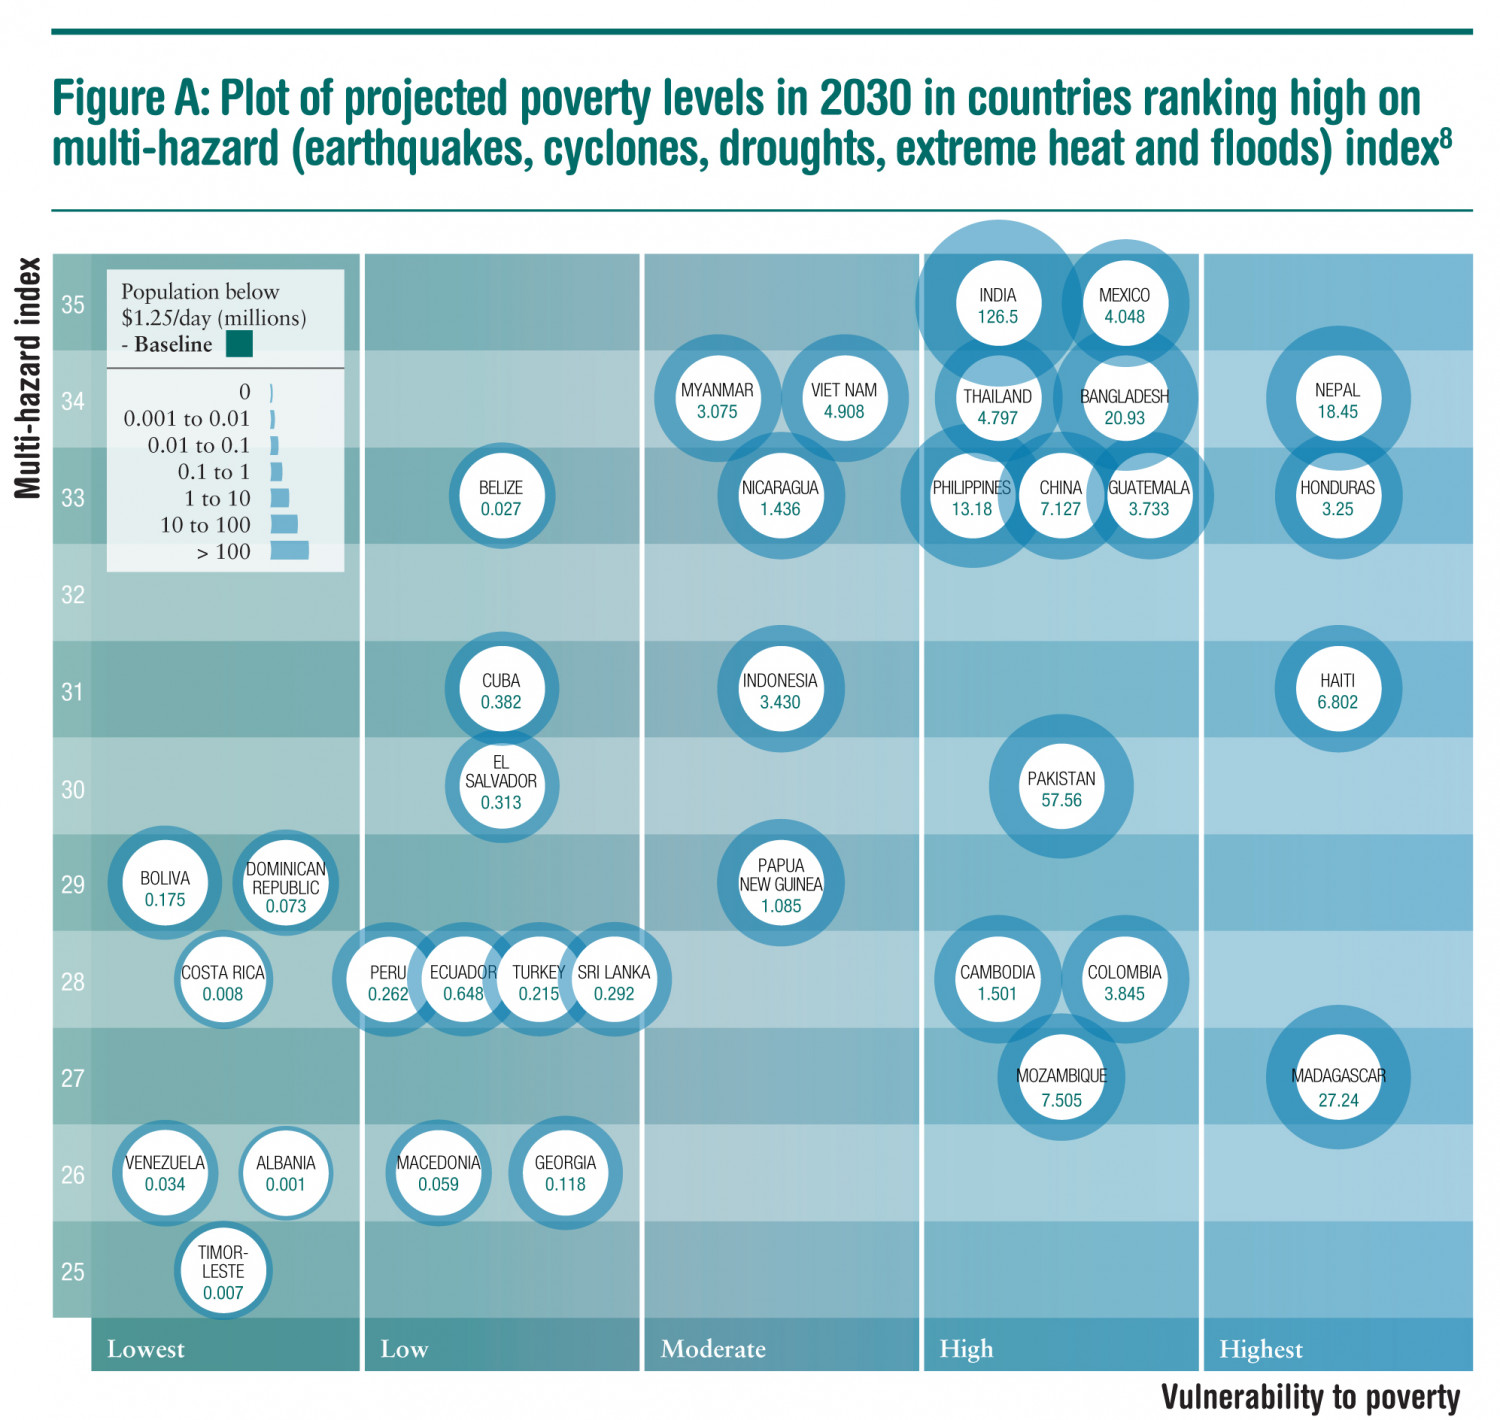 Projected poverty levels in 2030 in countries ranking high on multi-hazard index Infographic